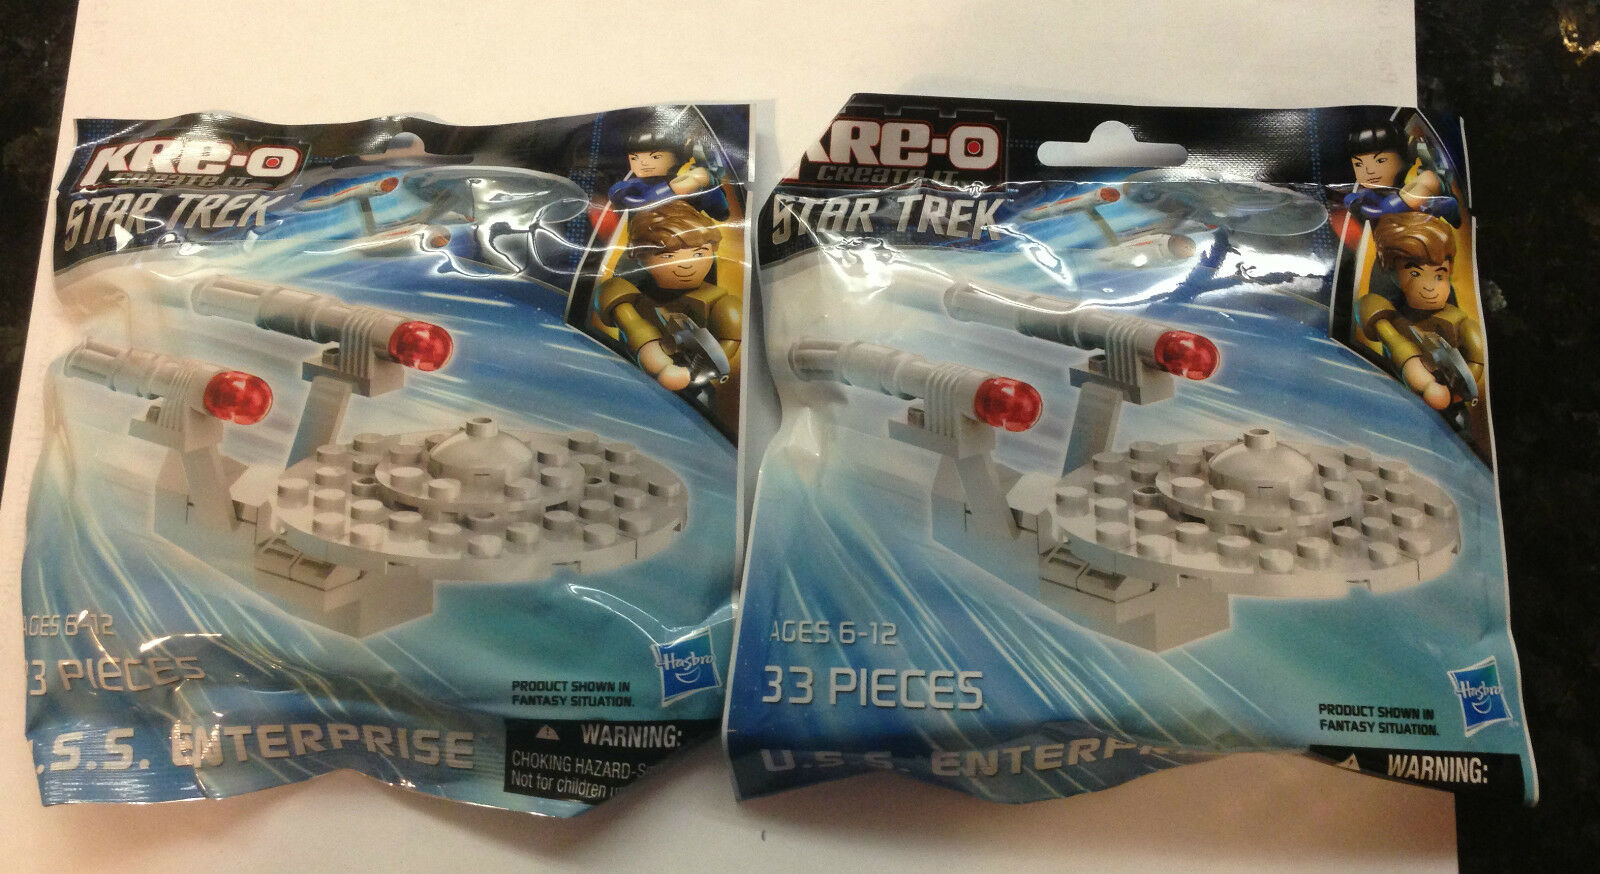 SDCC 2013 RARE EXCLUSIVE FROM FROM FROM HASBRO A SET OF 2 STAR TREK ENTERPRISE KREE-O'S c2c20f